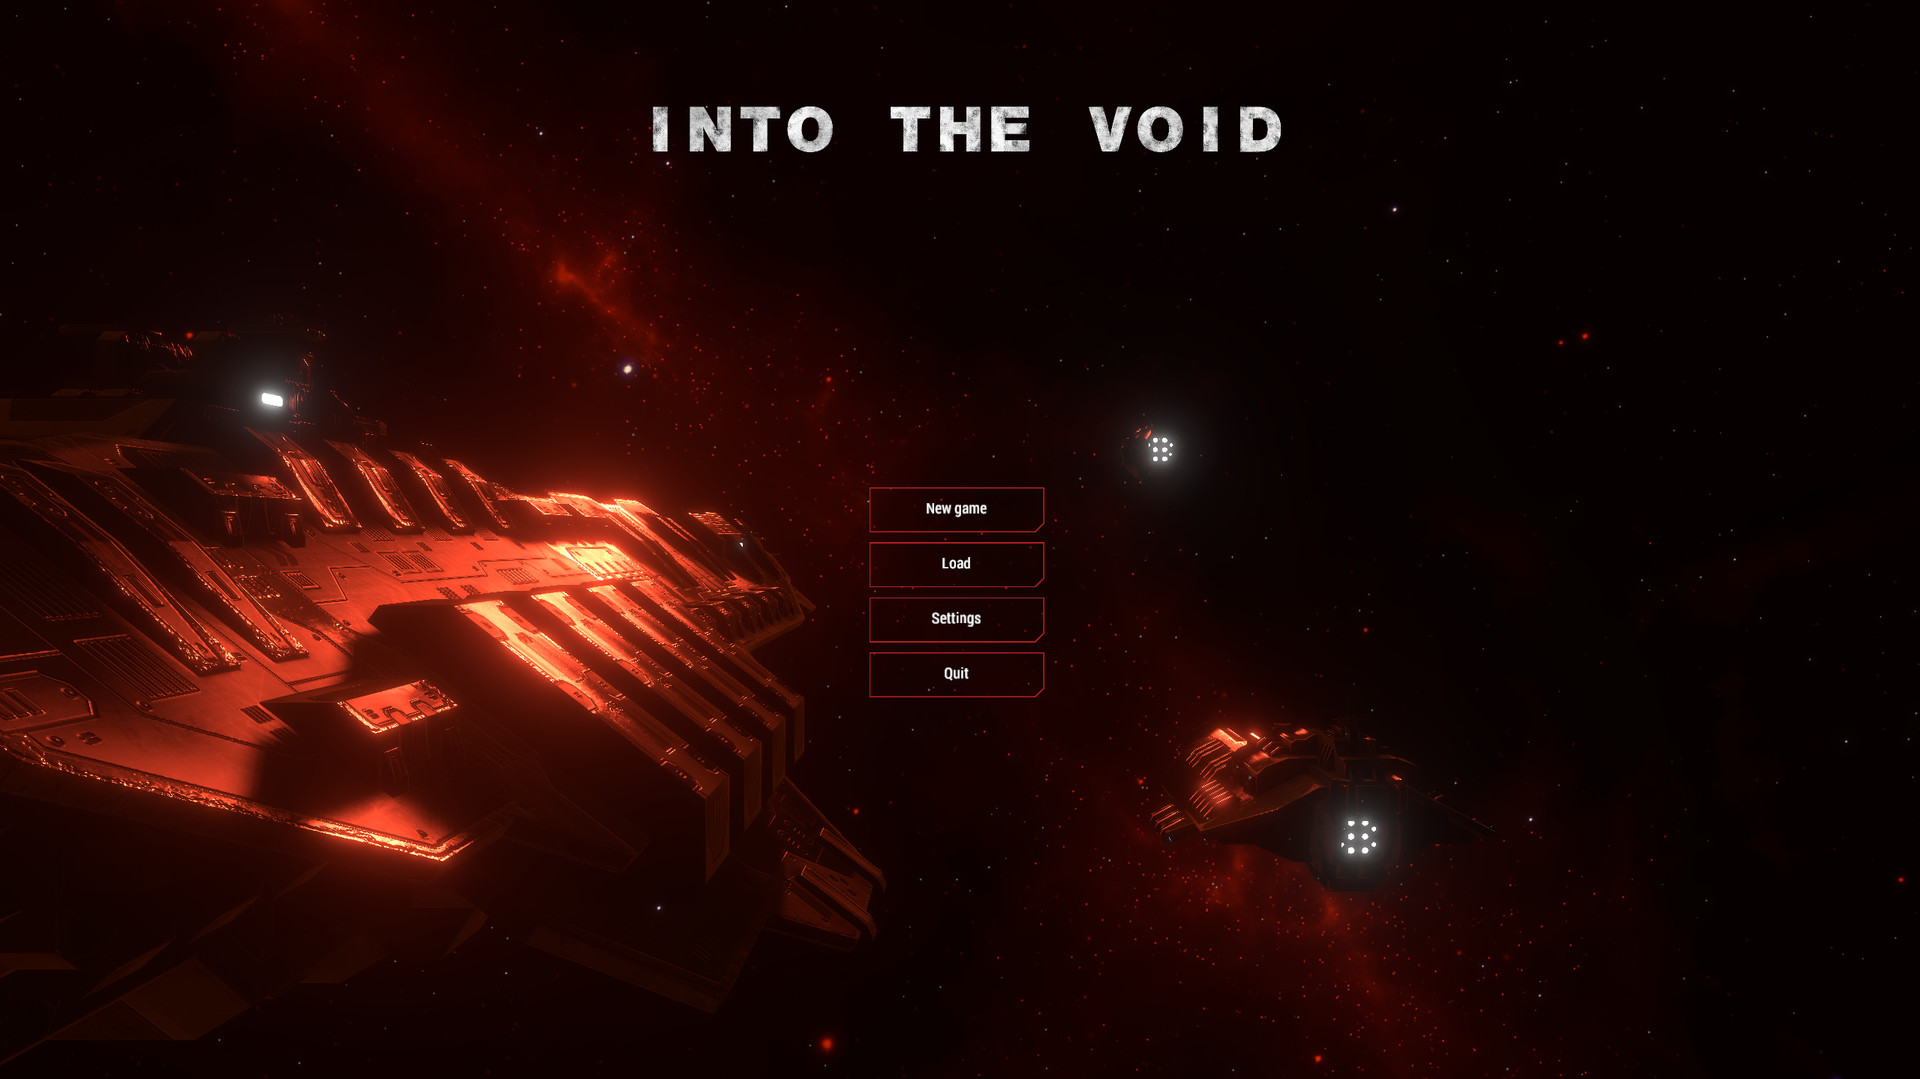 Into the Void (Steam Key, Region Free)